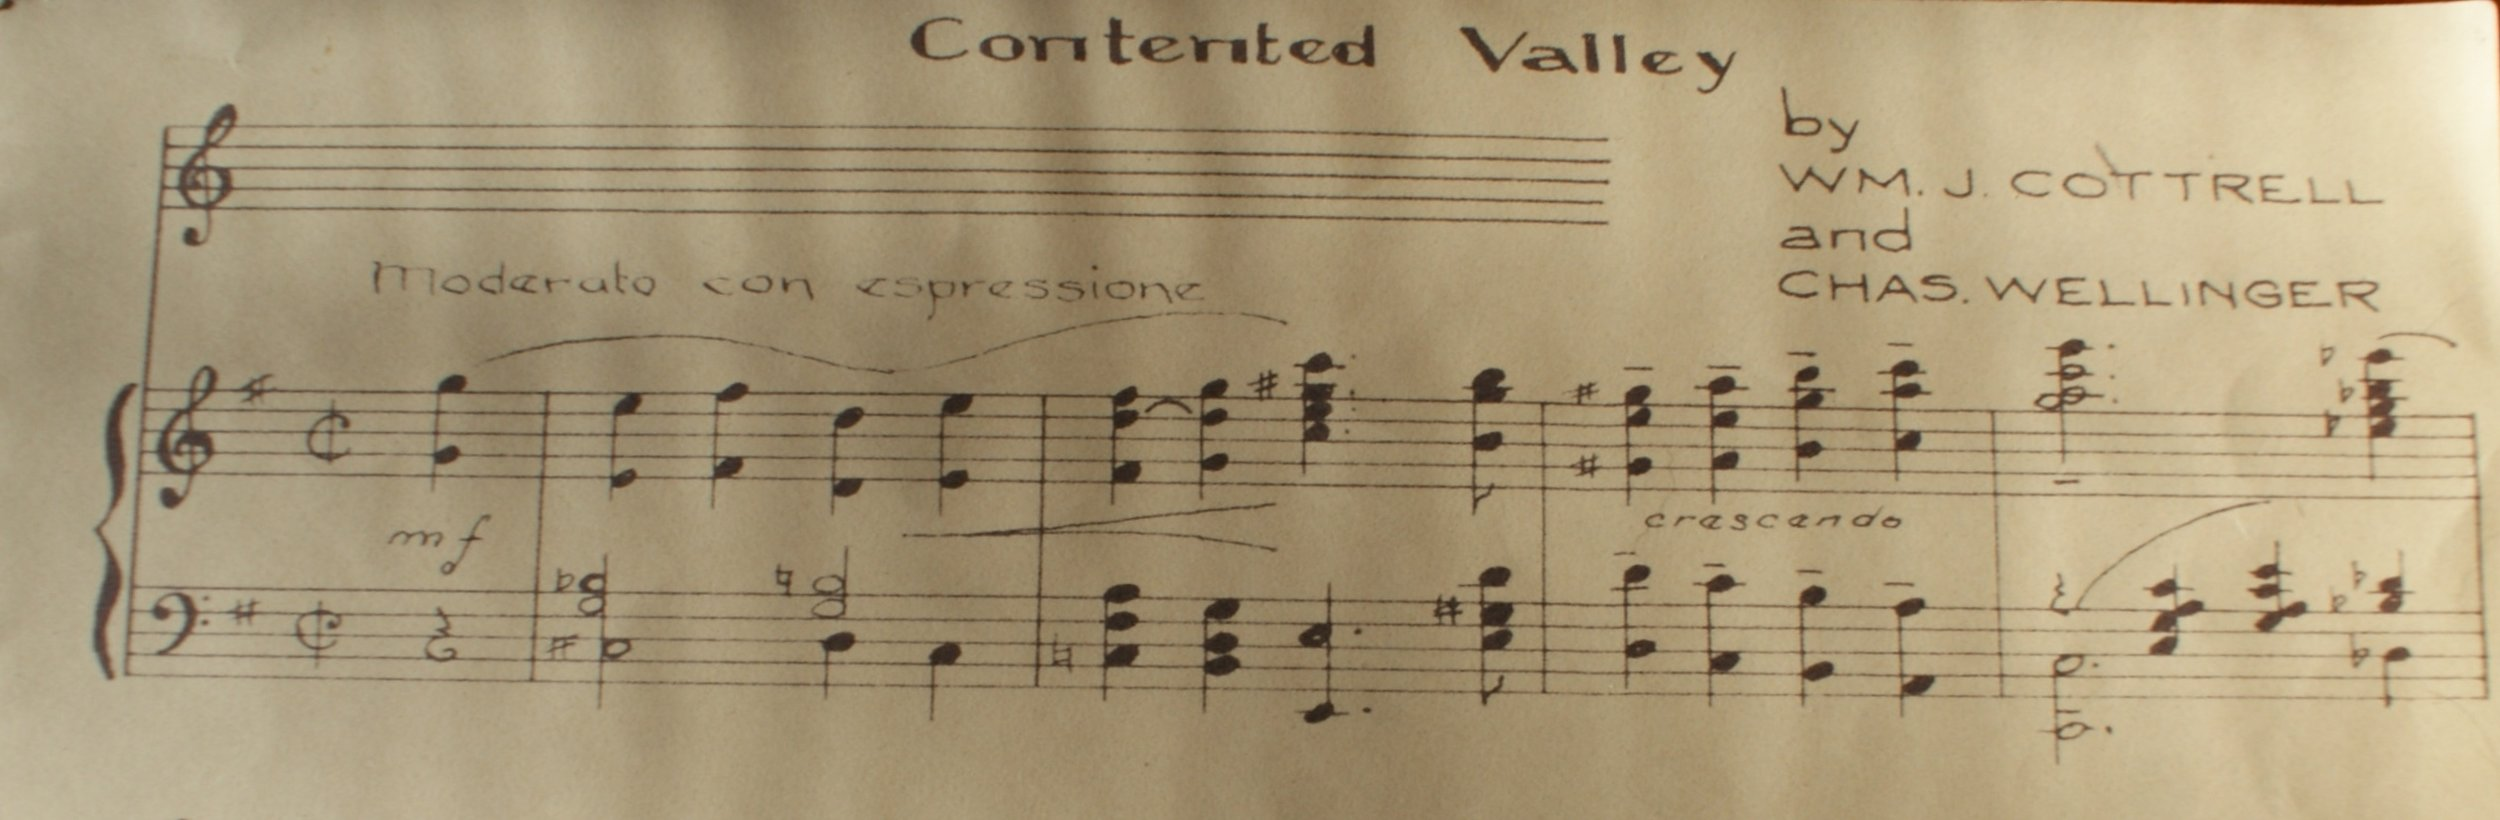 Contented Valley Music by Cottrell.JPG